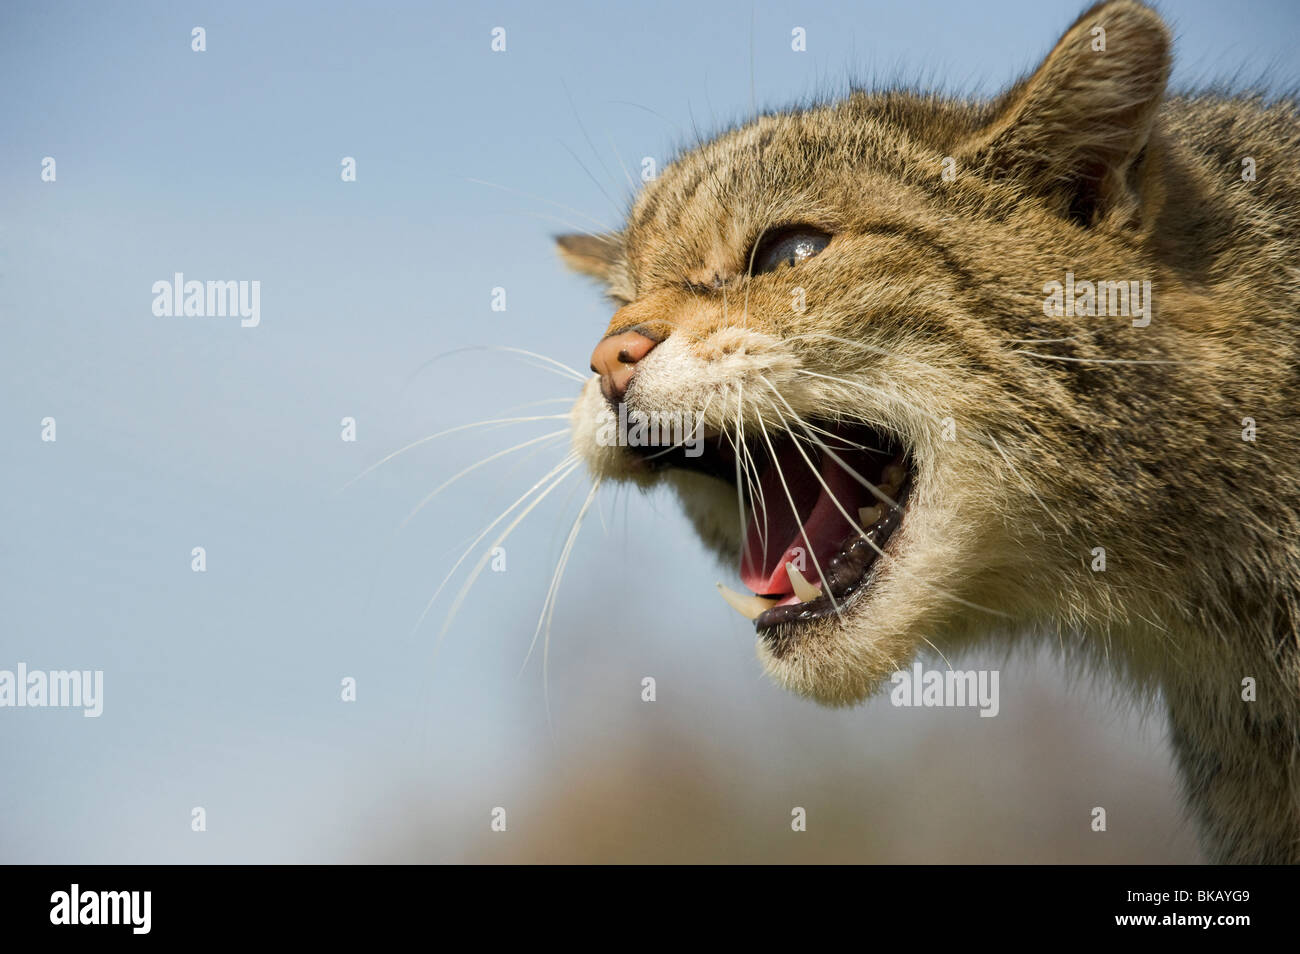 Scottish wild cat, Felis silvestris, snarling with ears flattened. - Stock Image